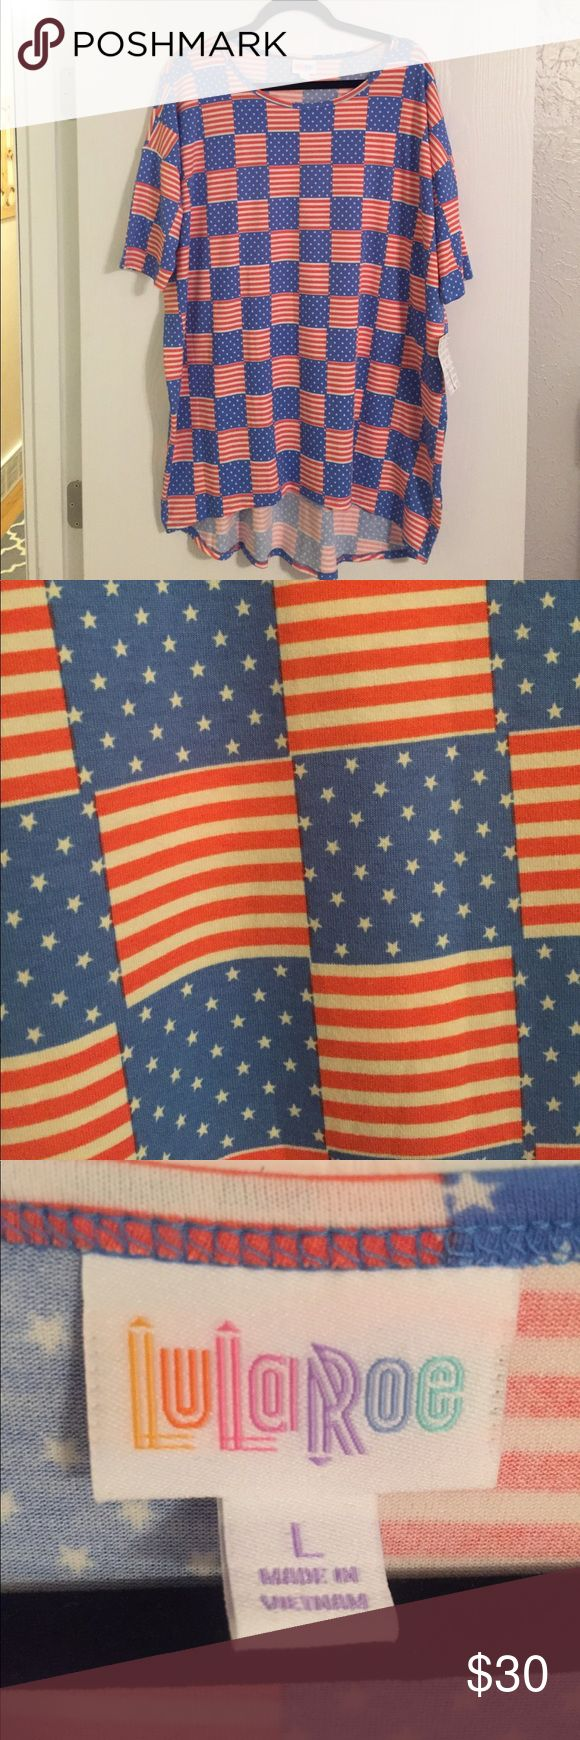 LulaRoe Irma Brand new, with tags LulaRoe Irma. From the Americana 2017 Collection. Red, white, and blue of course! Square flag pattern. Would look great for all of your patriotic festivities and for everyday wear! 'Merica! LuLaRoe Tops Tunics